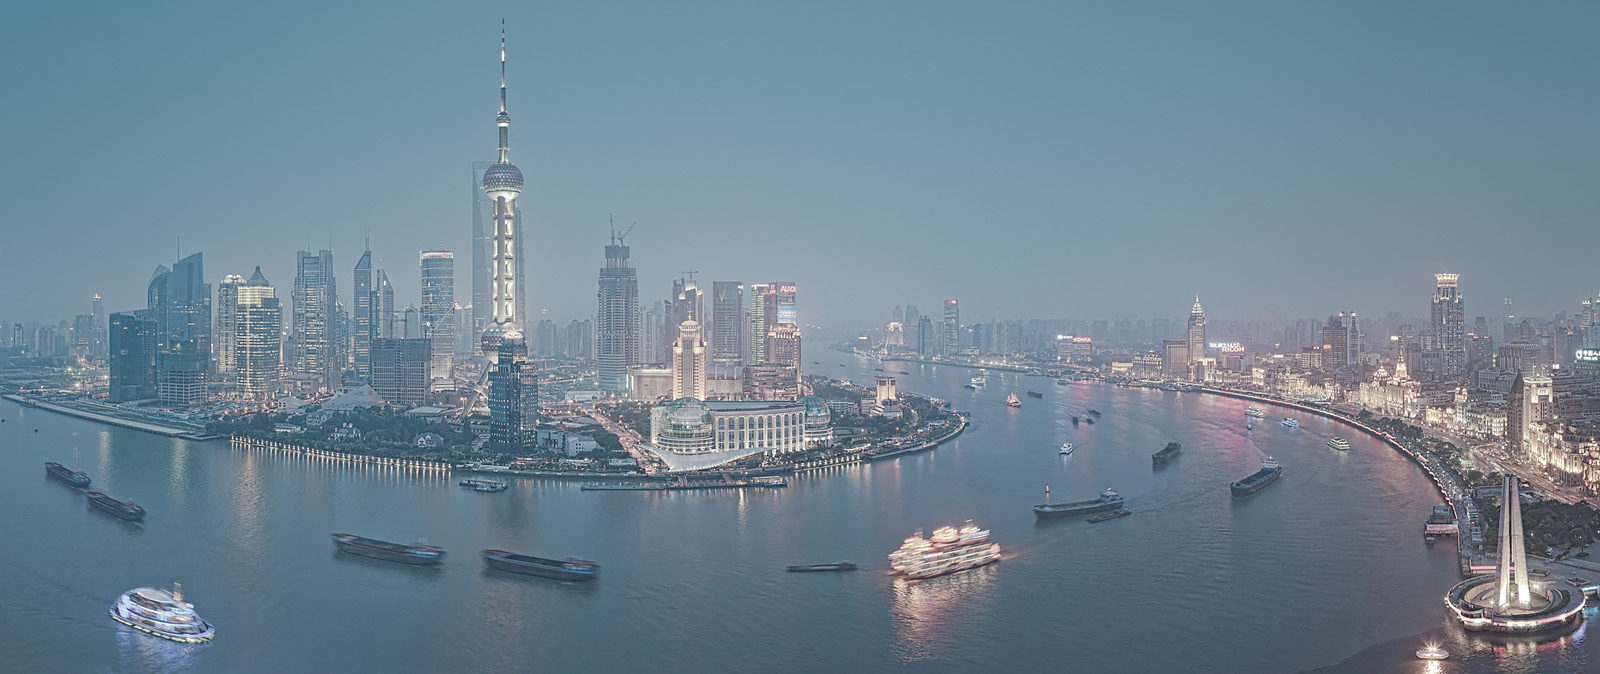 Huangpu River Acryllic - High-Res acrylic mounted Fine Art panoramic photo